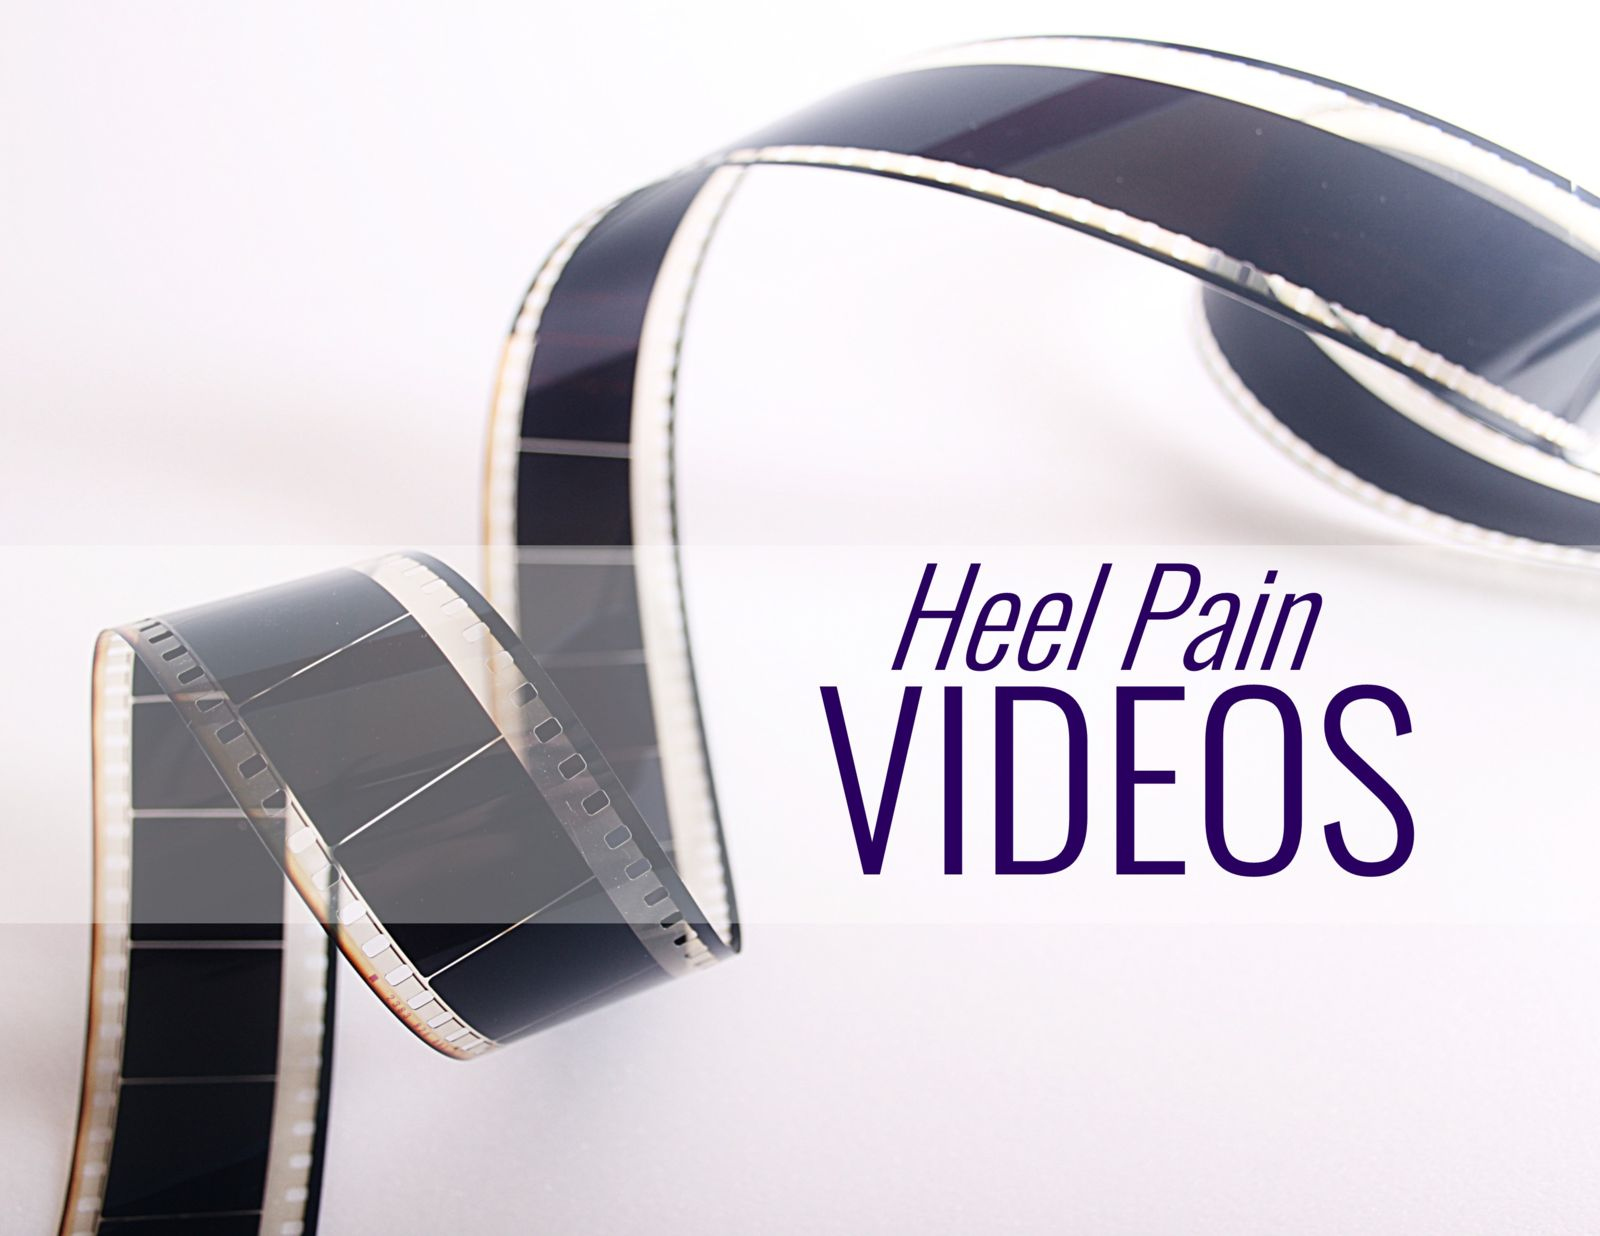 movie tape and the words: Heel Pain Videos